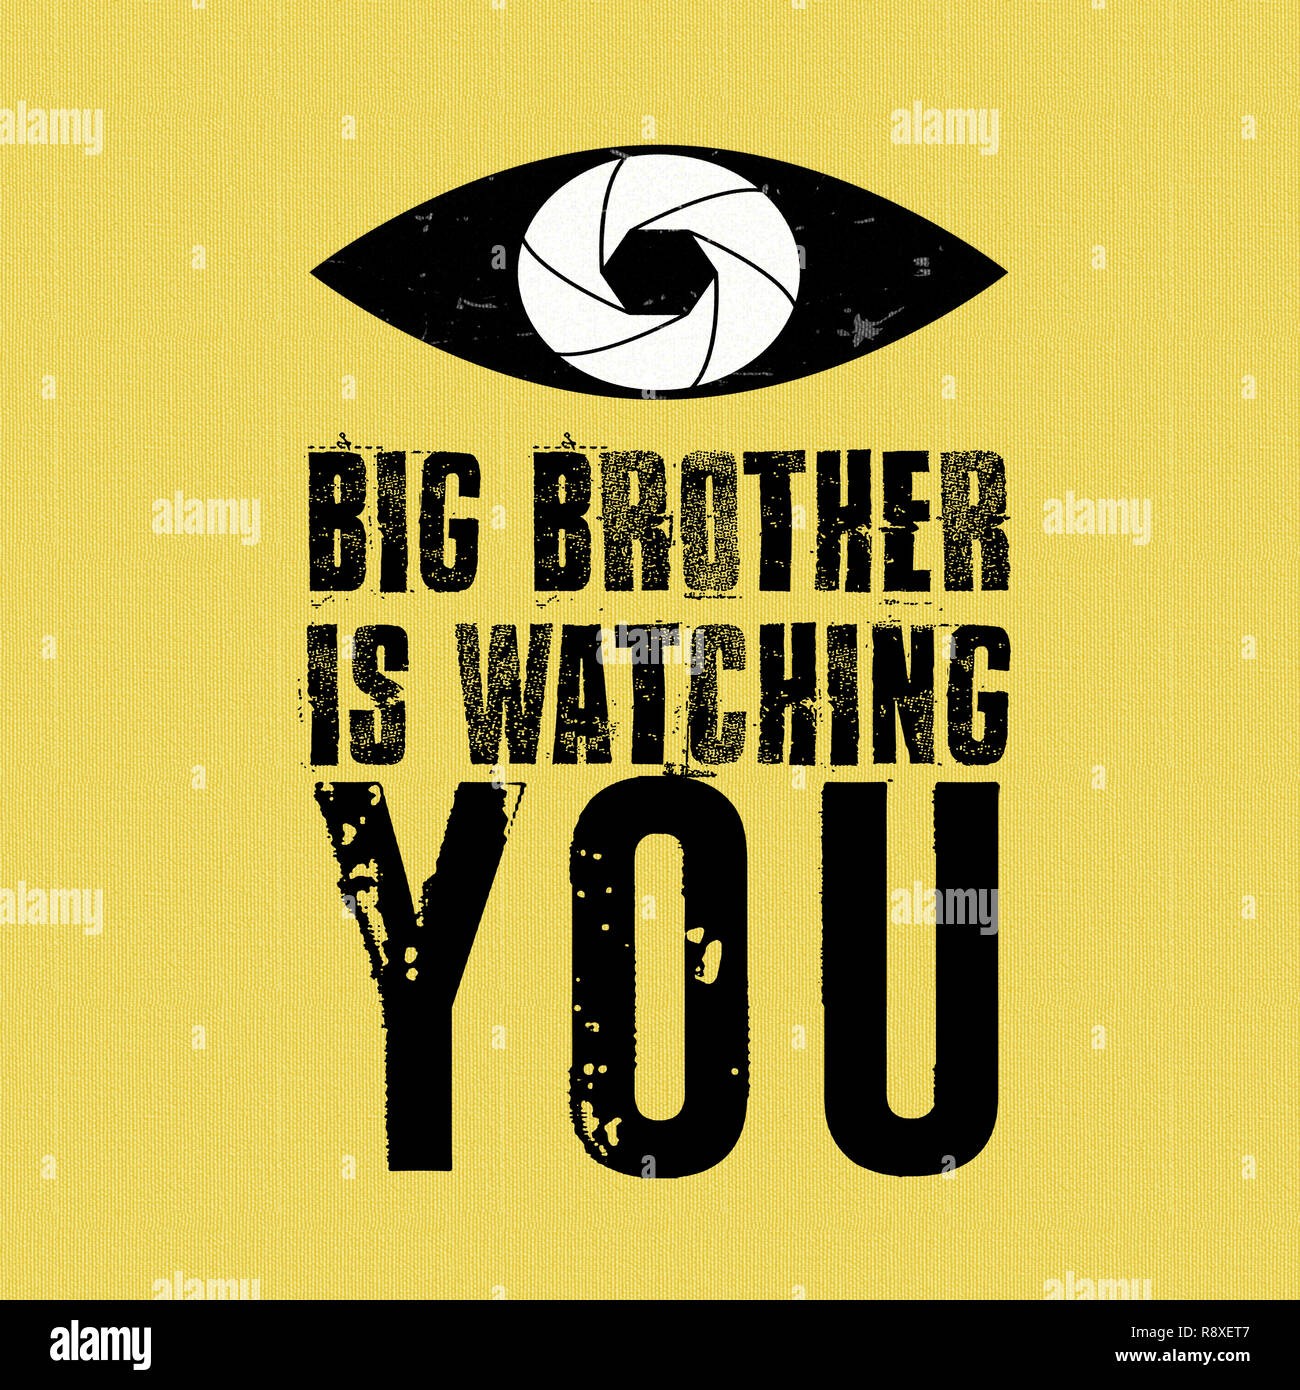 Big Brother is Watching YOU! - Stock Image